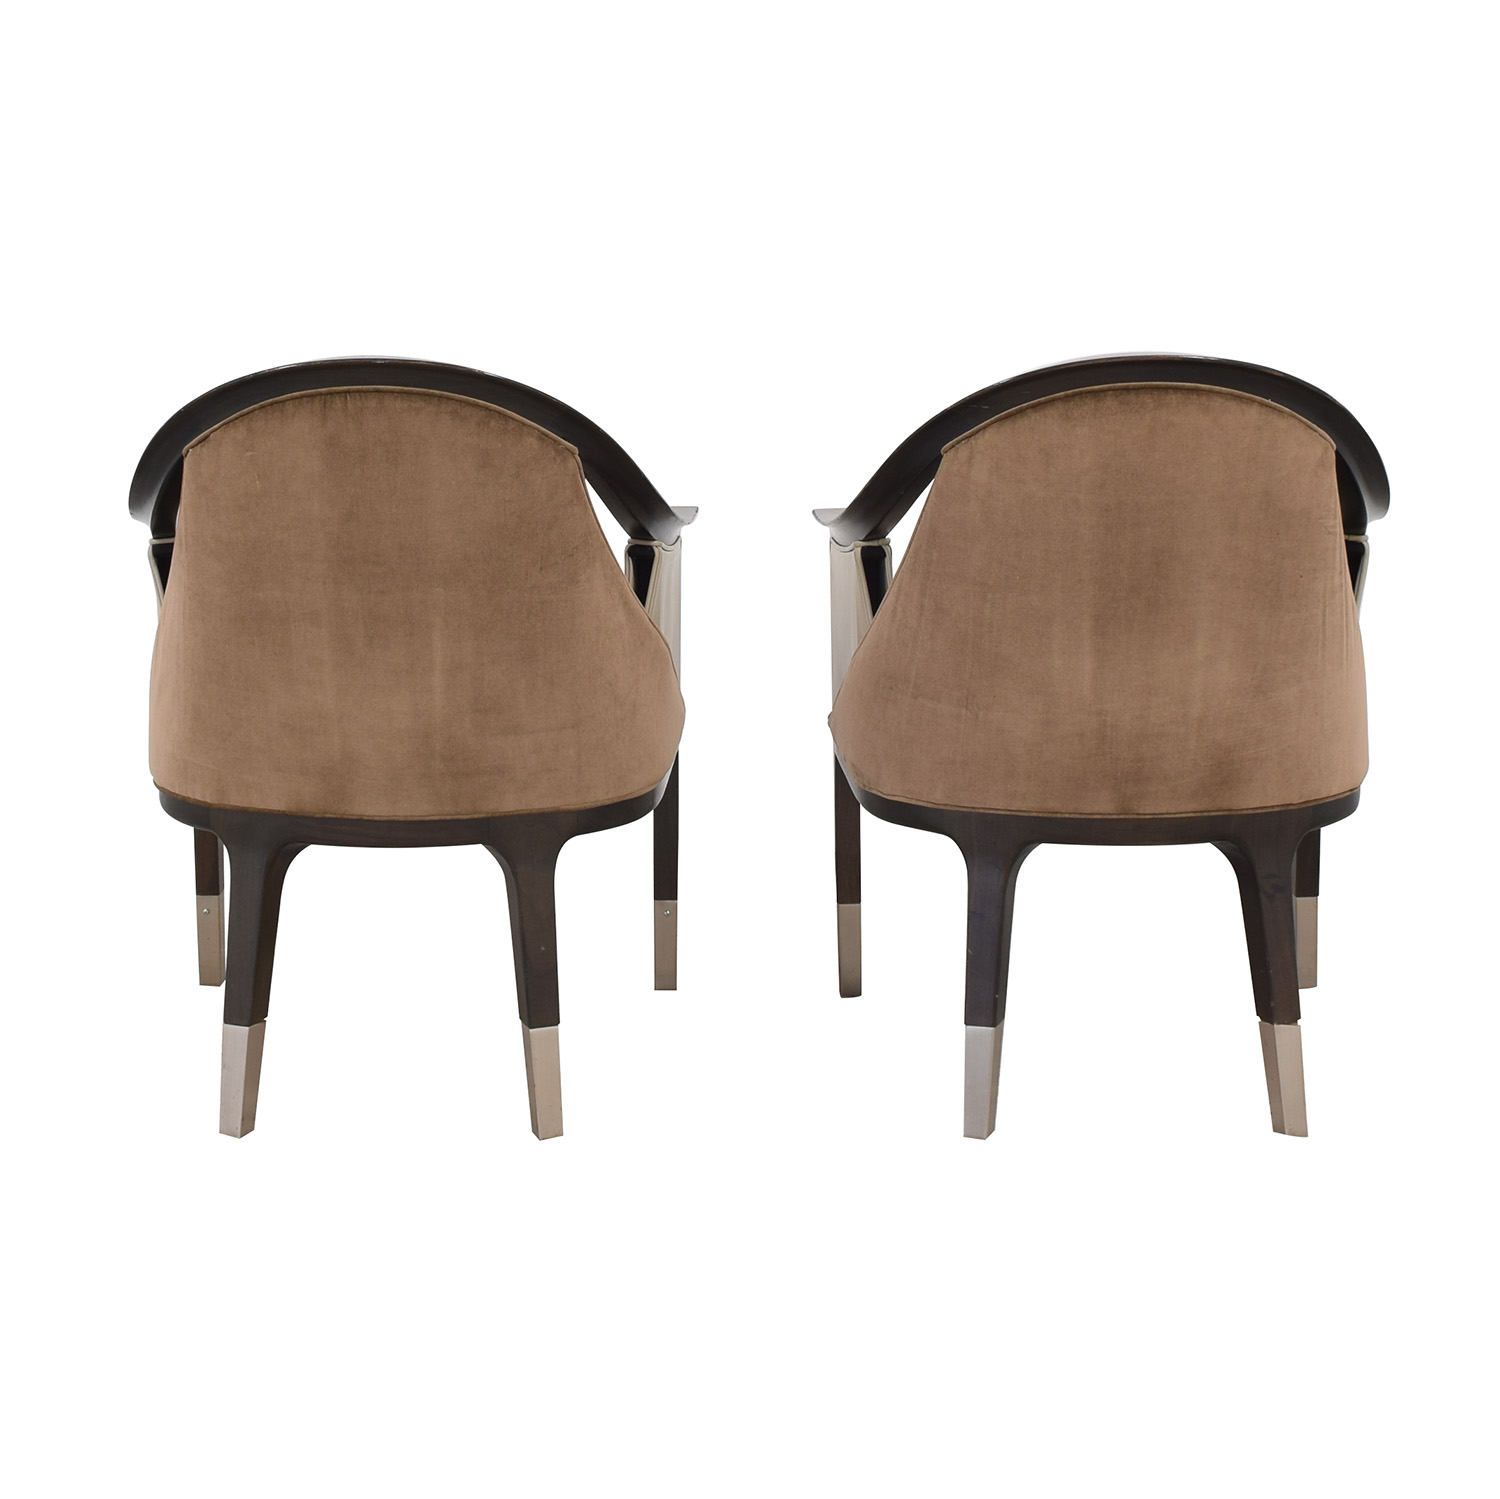 Allied Form Works Allied Works Eleven Madison Park Dining Room Chairs dimensions